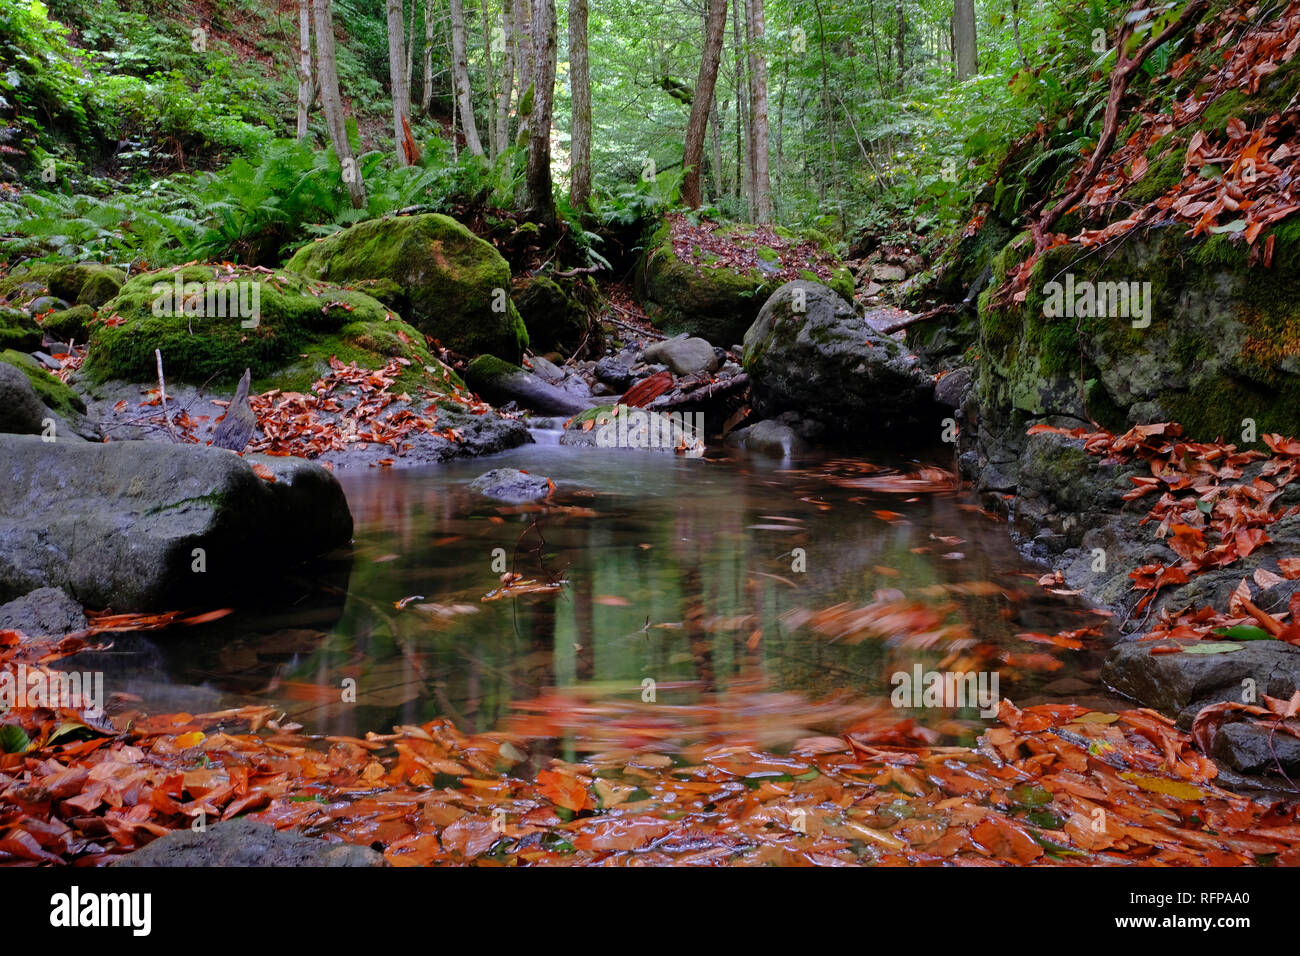 Eastern Black Sea region attracts attention with its natural beauties.  creeks in autumn creates beautiful images. Stock Photo